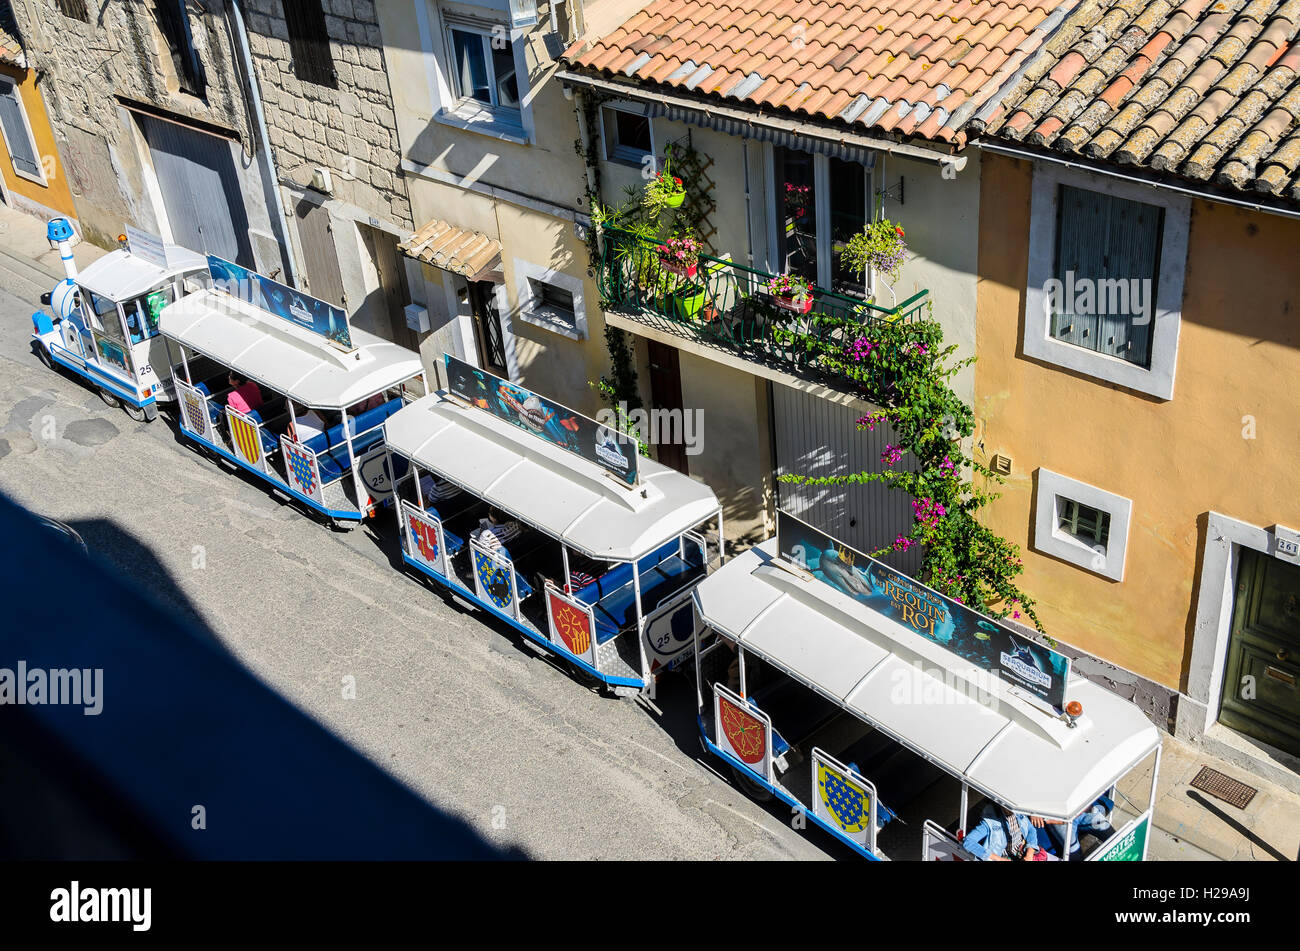 rue, Aigues Mortes, remparts, Gard, France - Stock Image